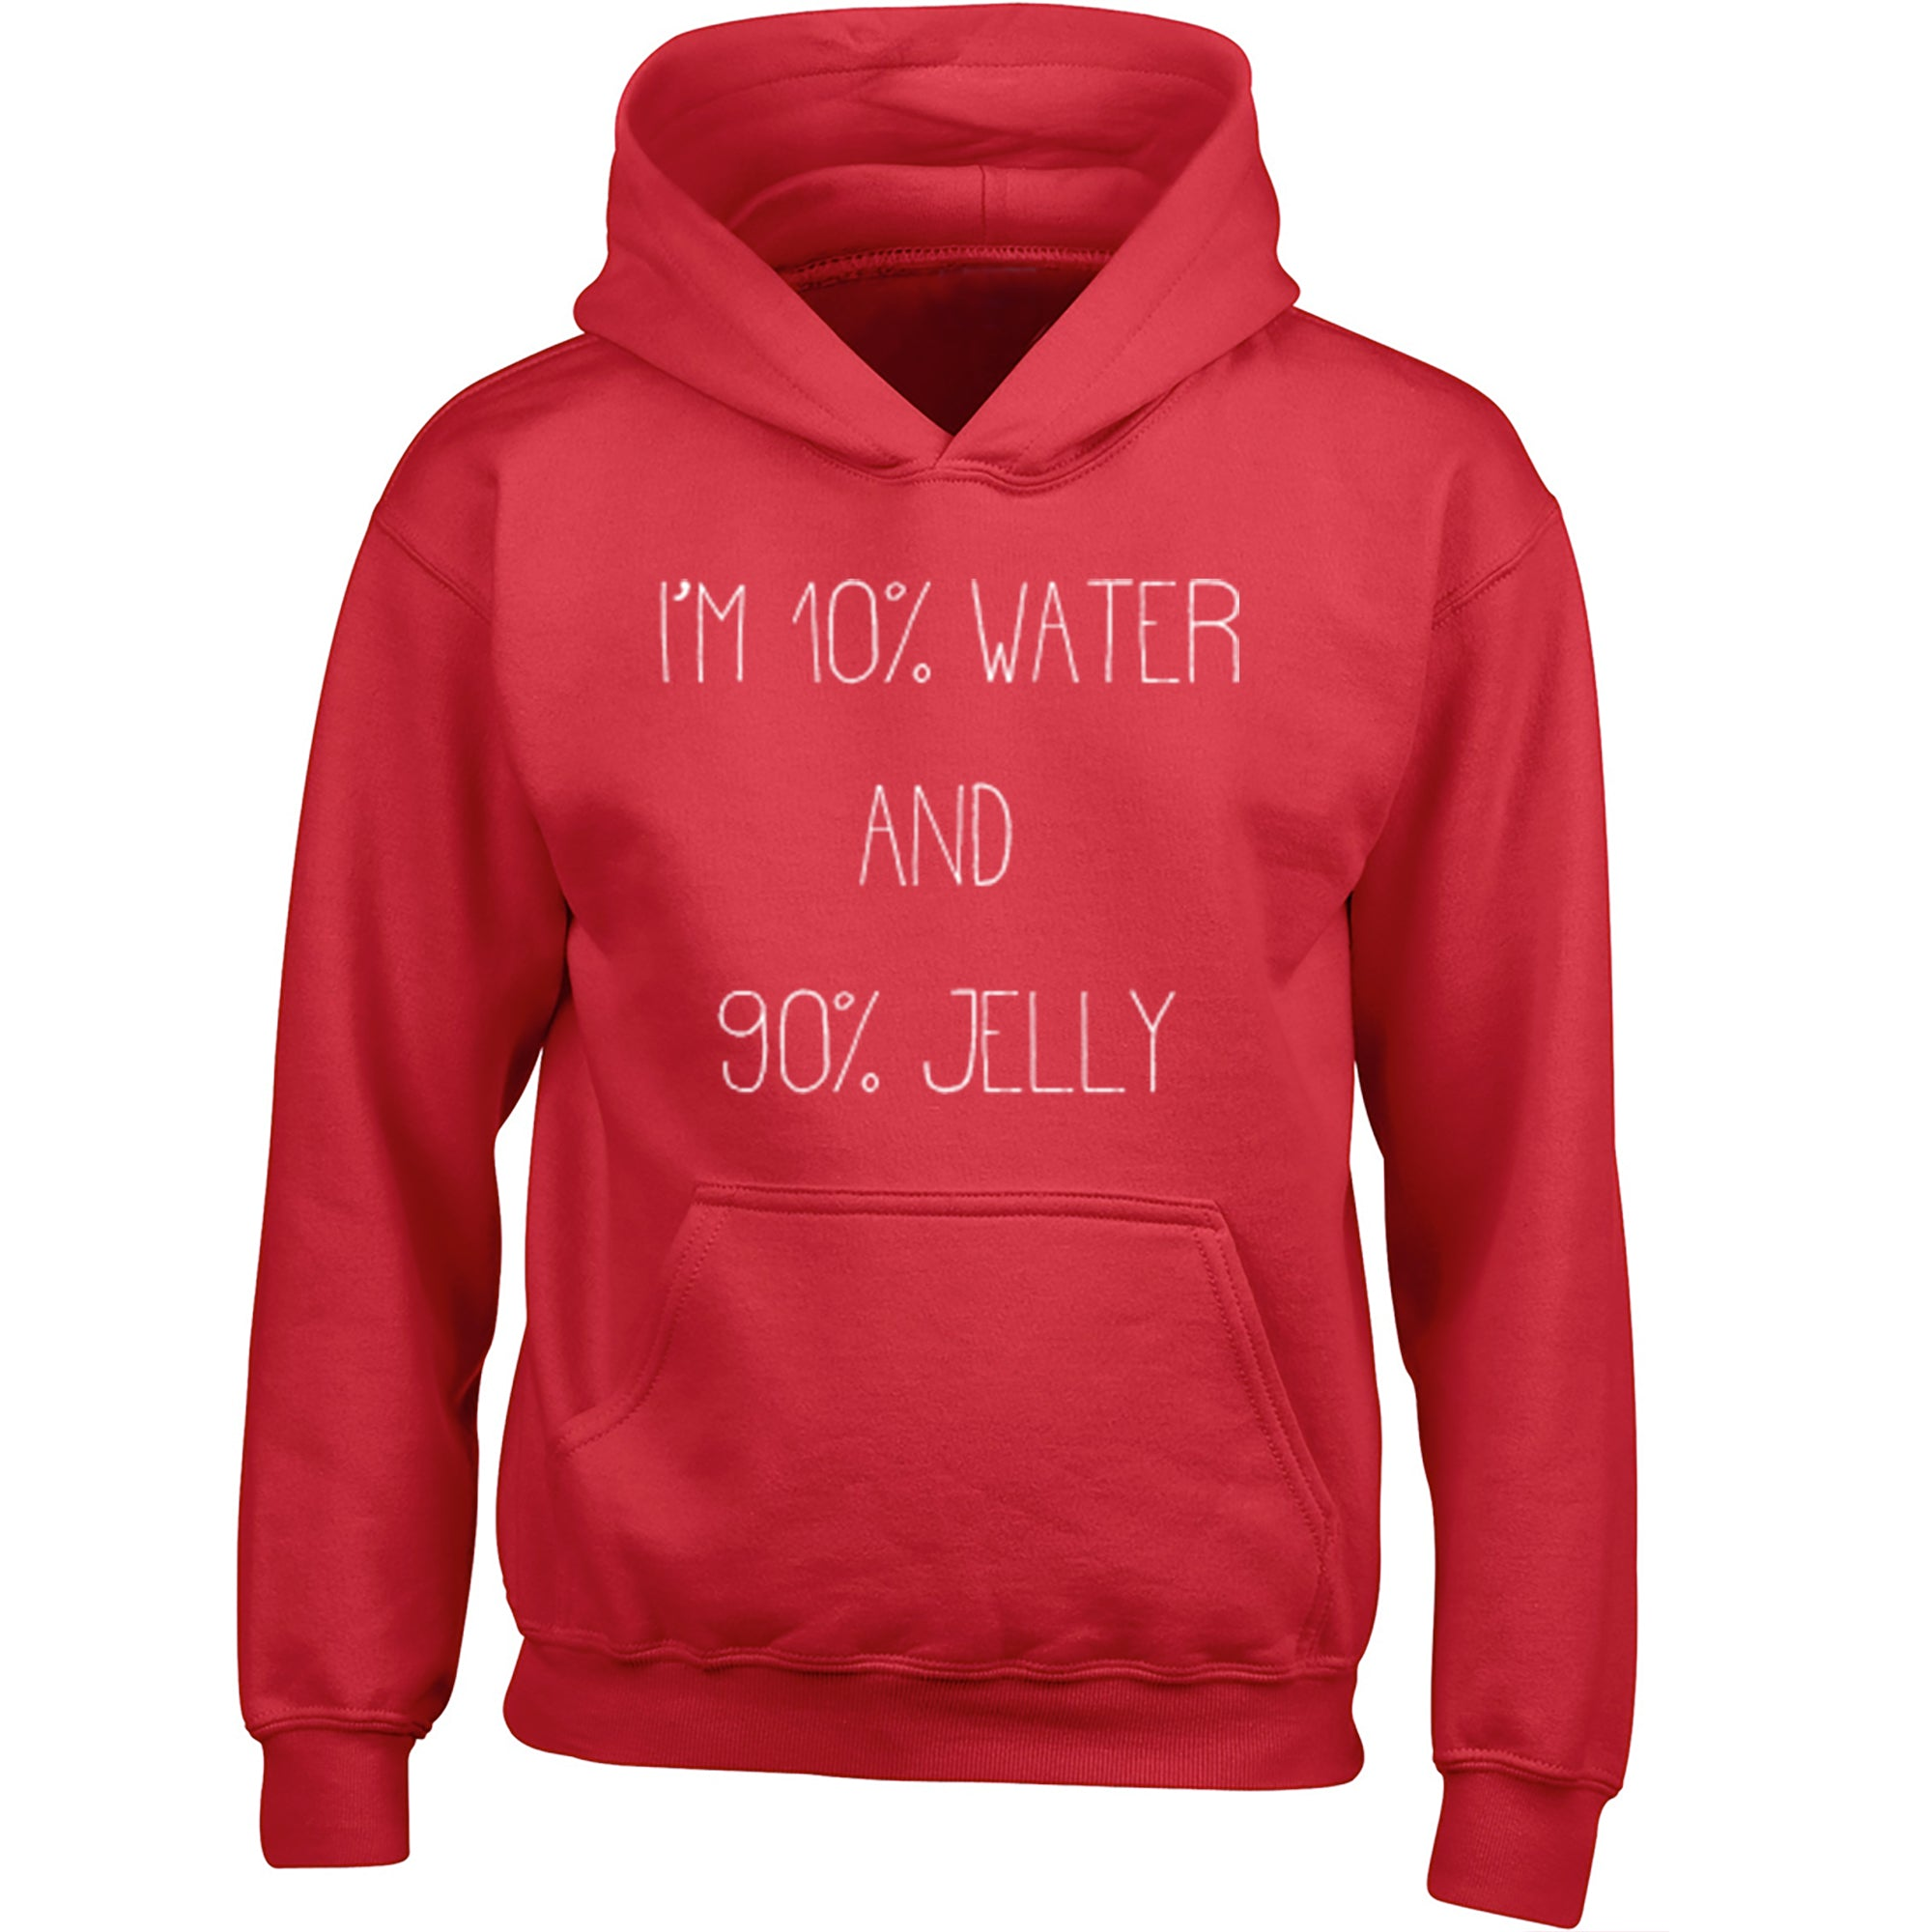 I'm 10% Water And 90% Jelly Childrens Ages 3/4-12/14 Unisex Hoodie S0488 - Illustrated Identity Ltd.